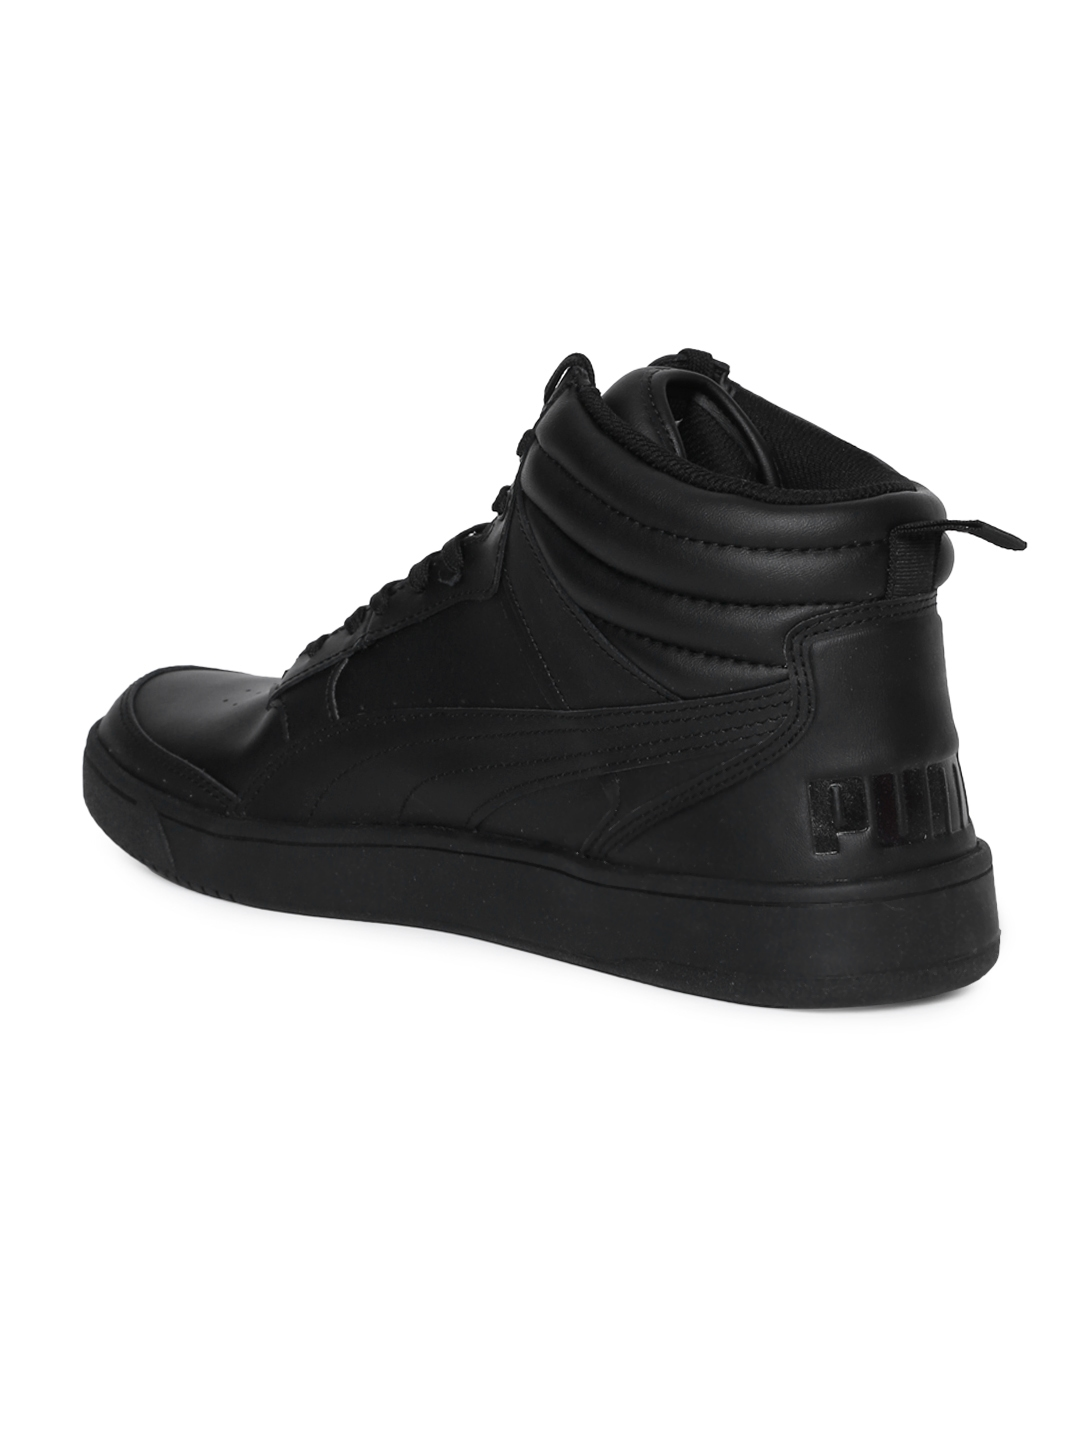 06b8211fd87 Buy Puma Men Black Rebound Street V2 L IDP Sneakers - Casual Shoes ...